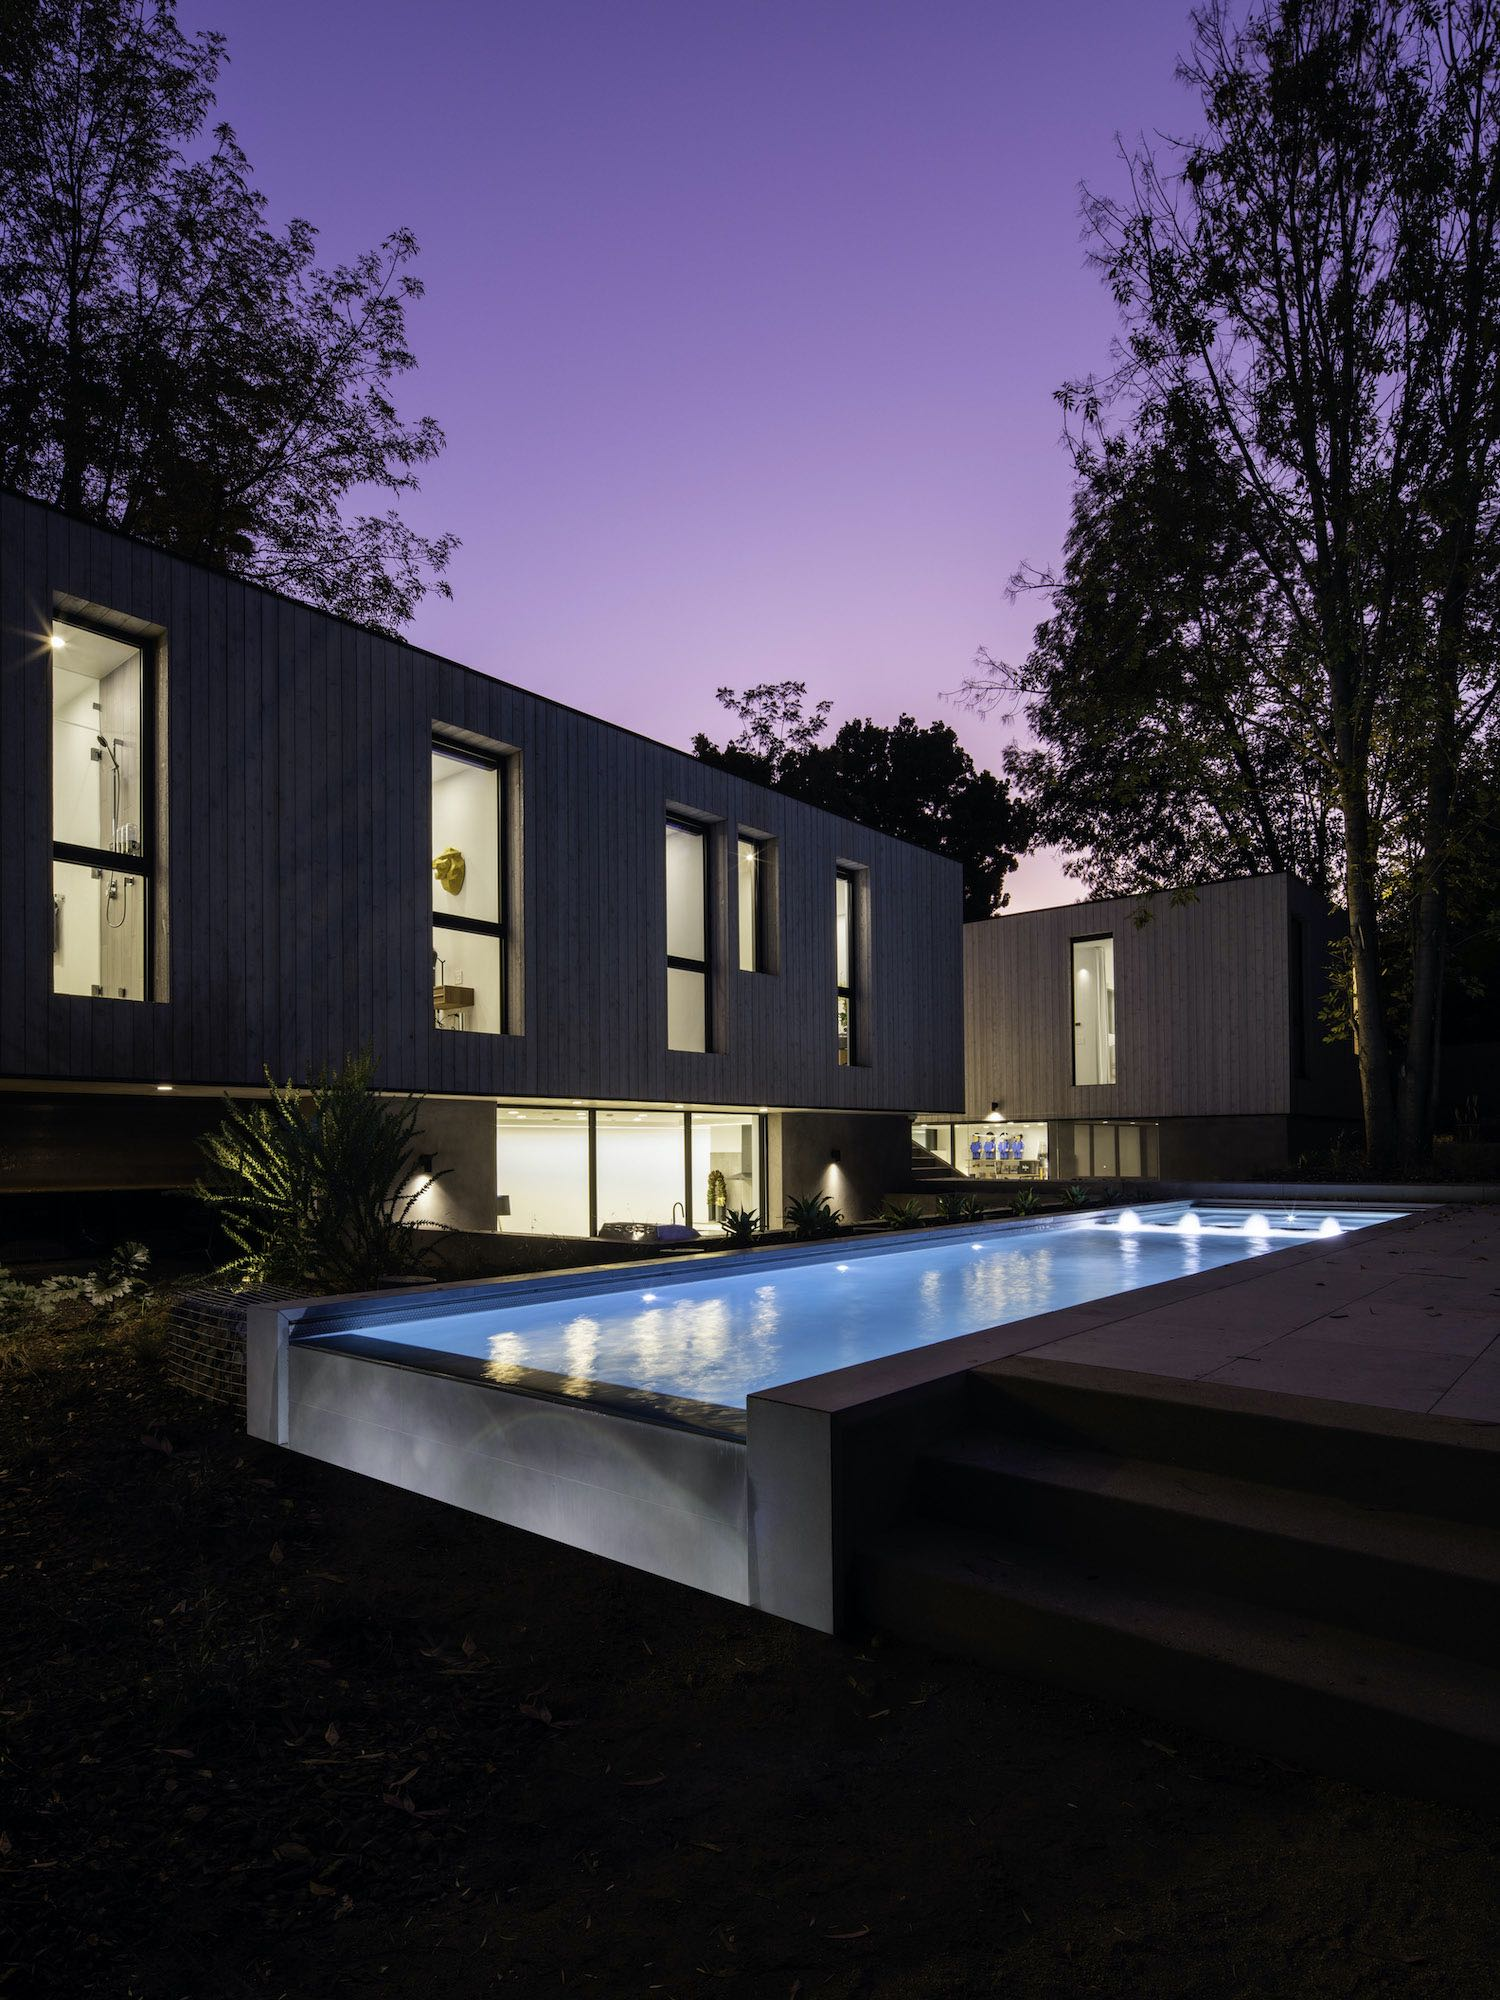 house with pool illuminated at night